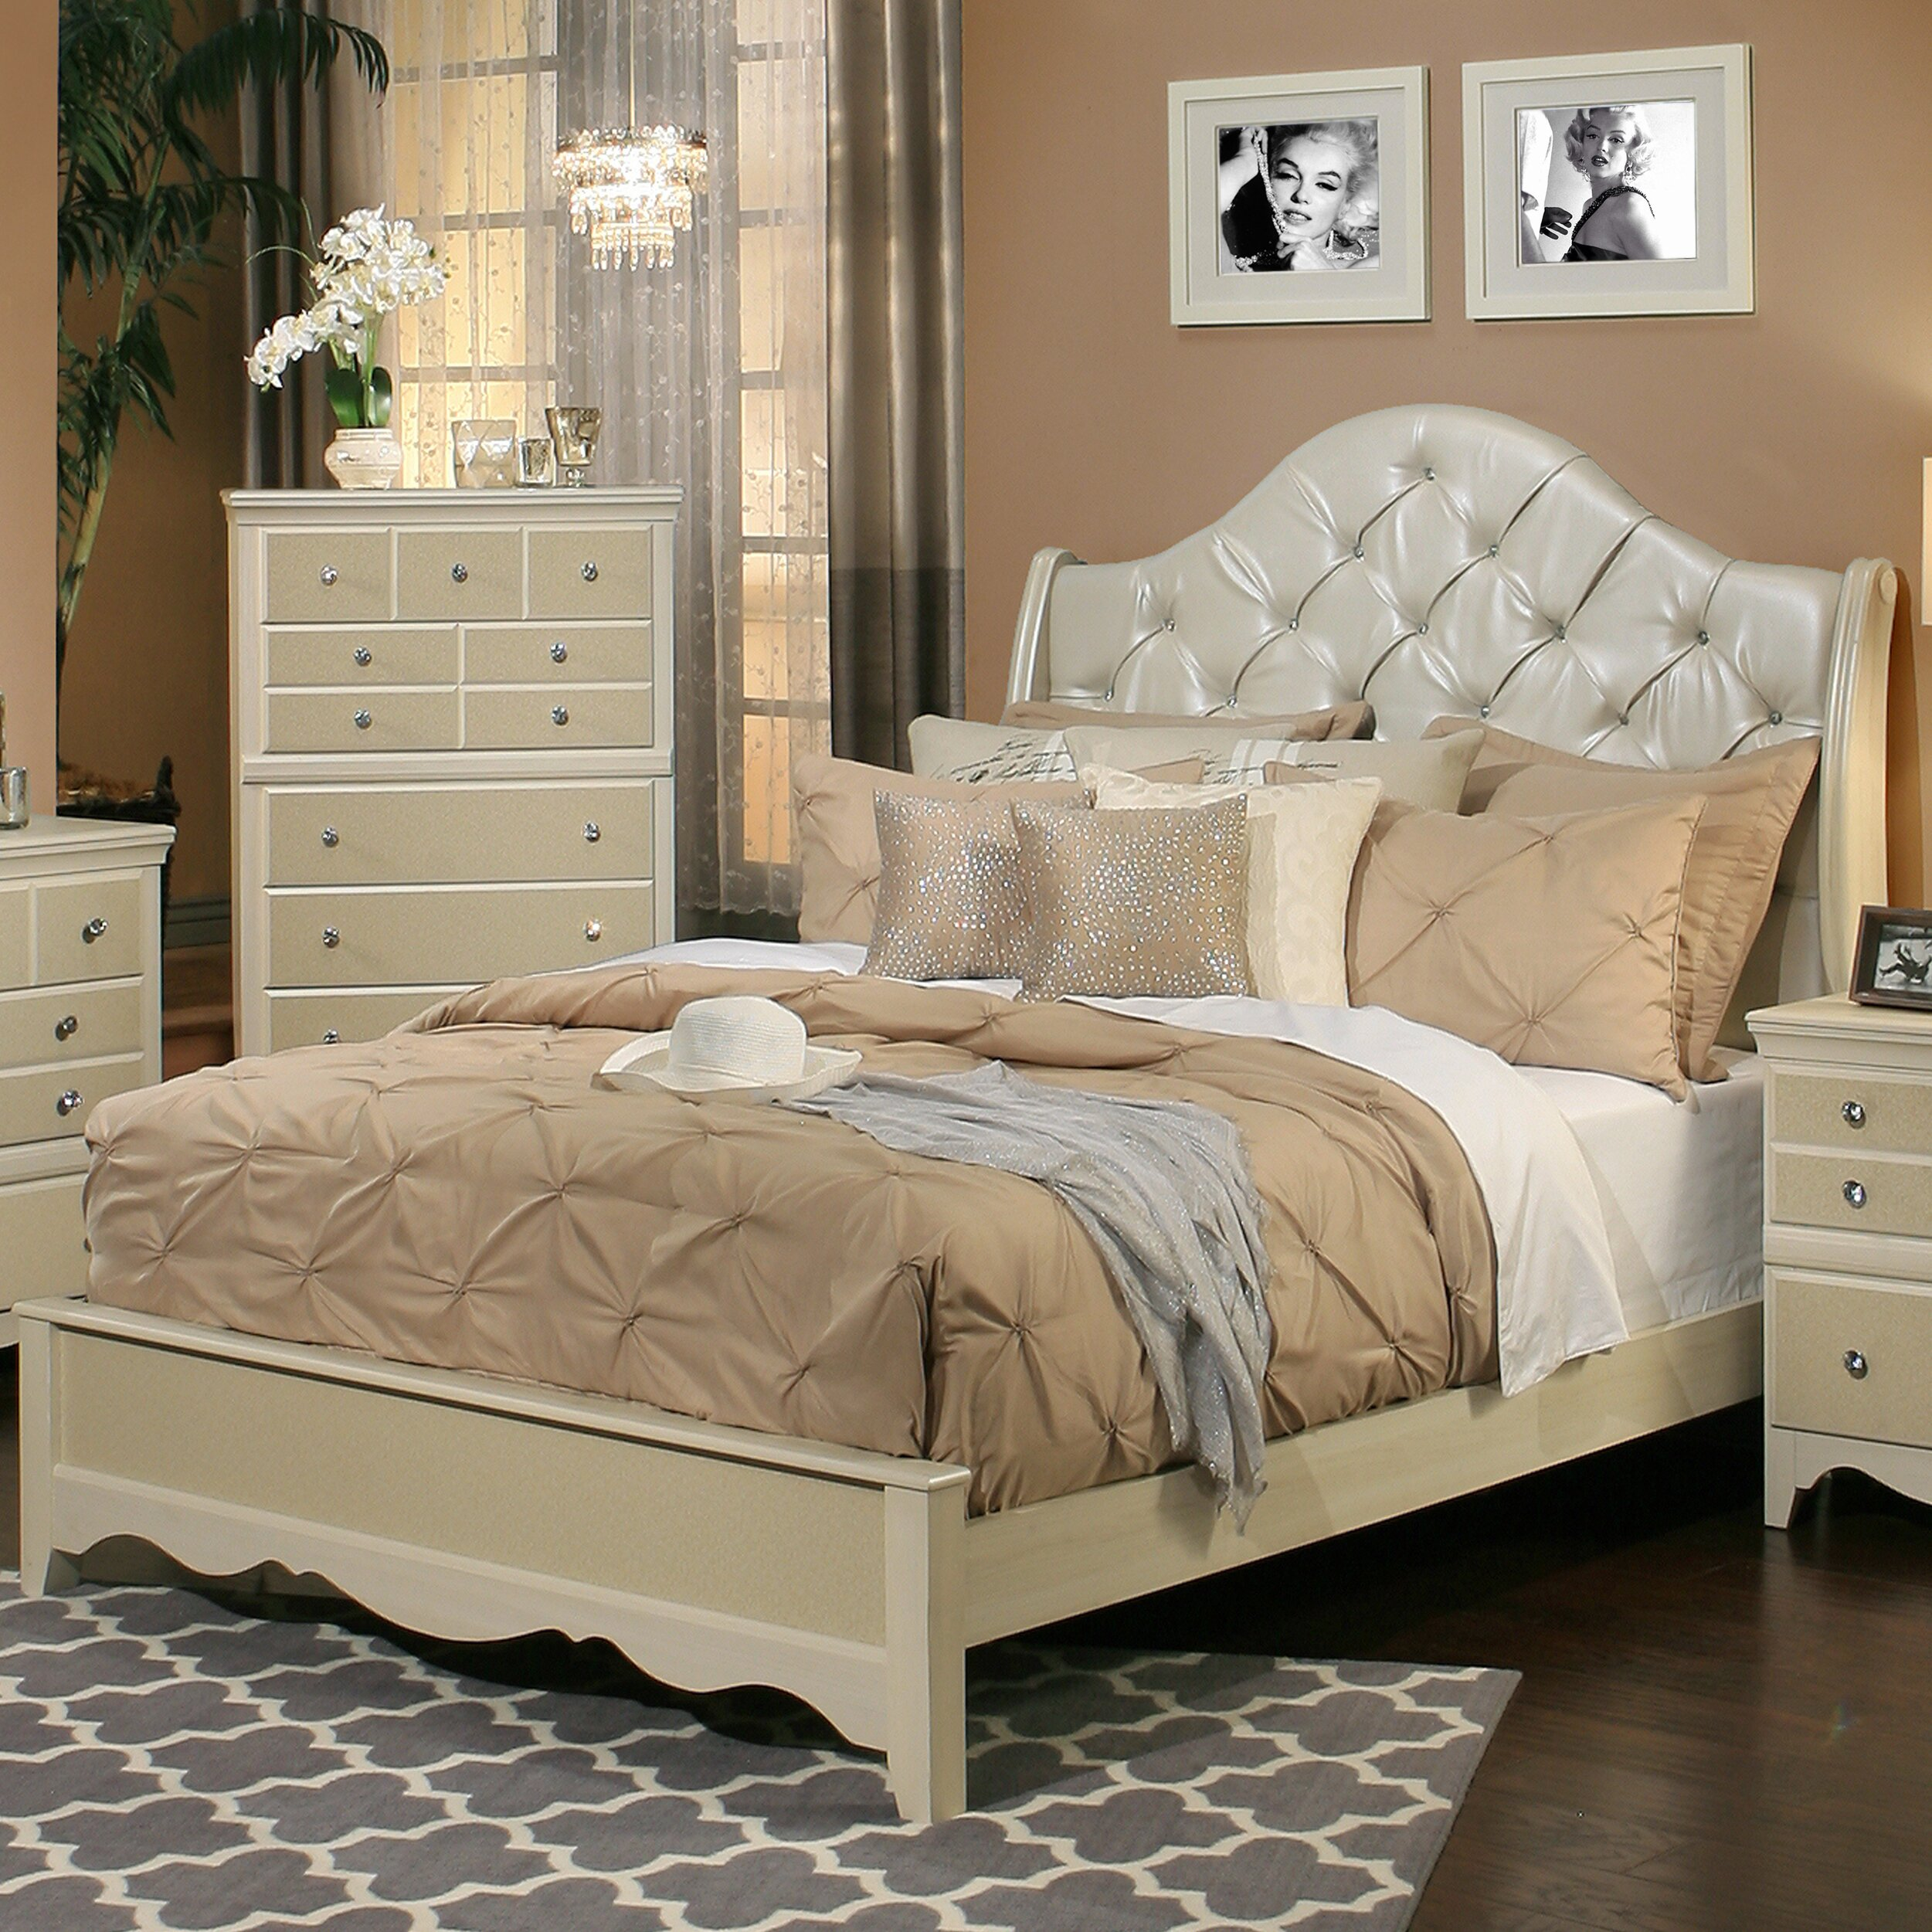 Sandberg Furniture Marilyn Panel Customizable Bedroom Set Reviews Wayfair